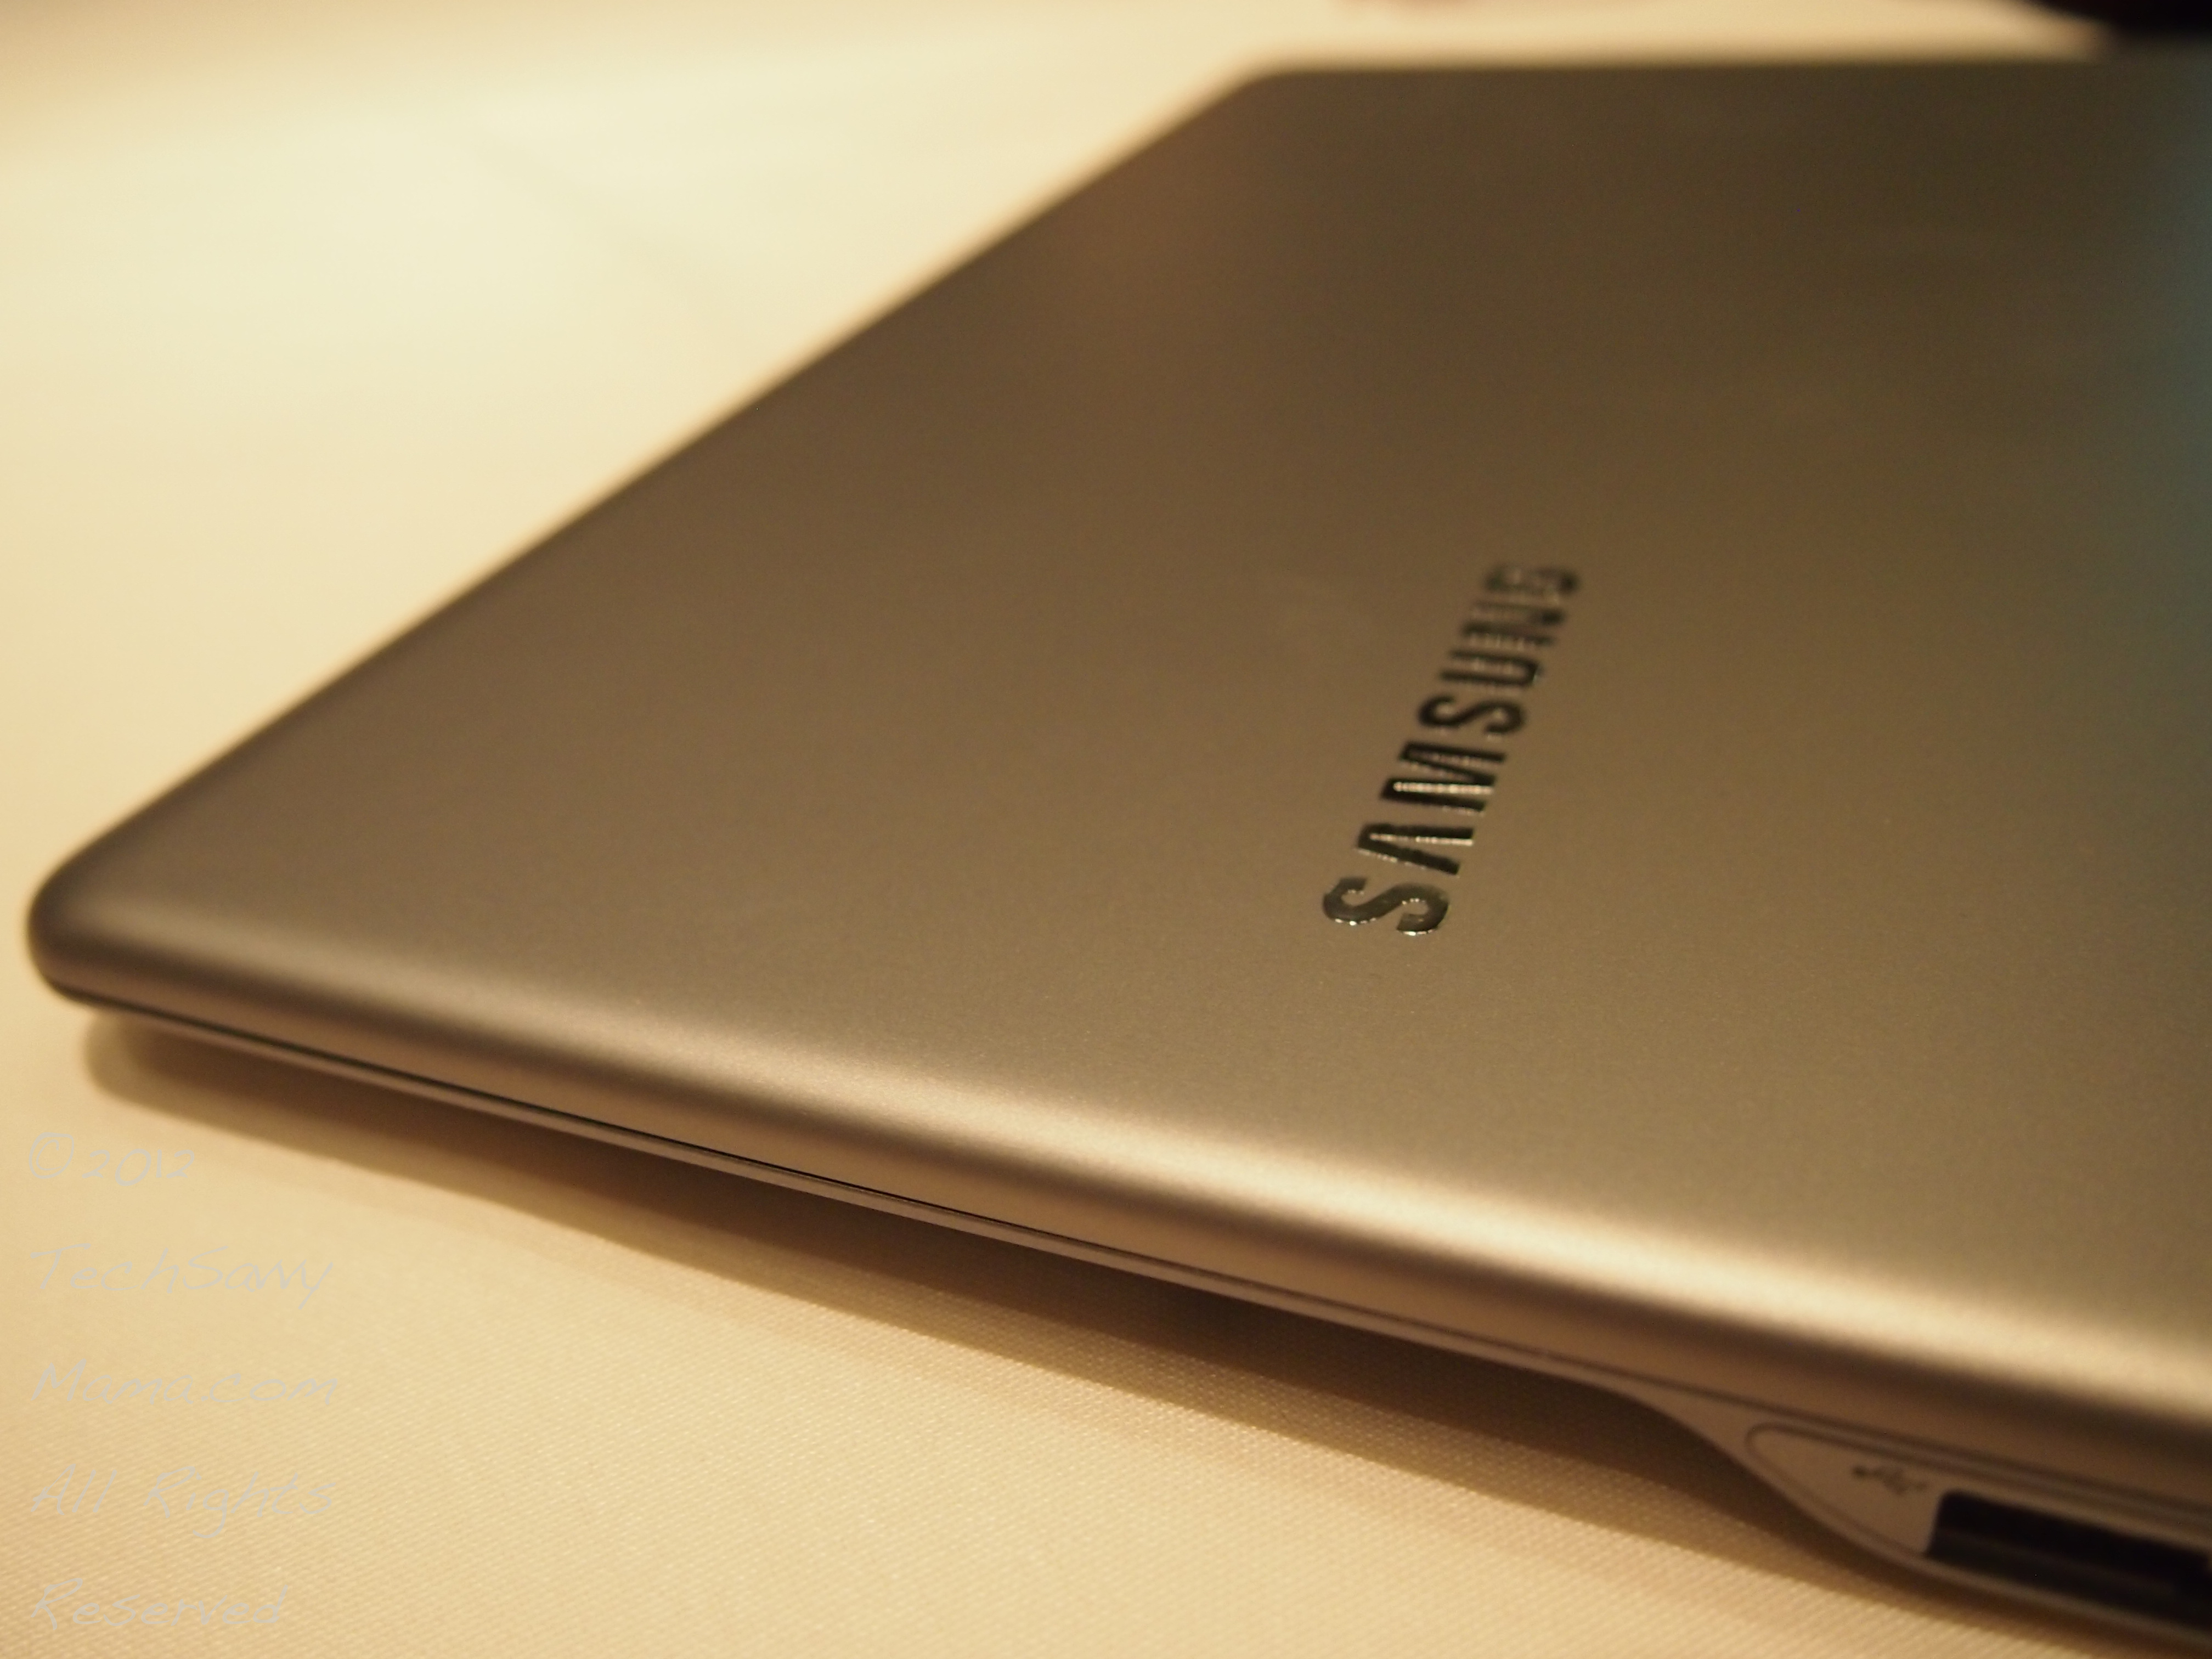 Review: Samsung Series 5 Ultra-Portable Laptop